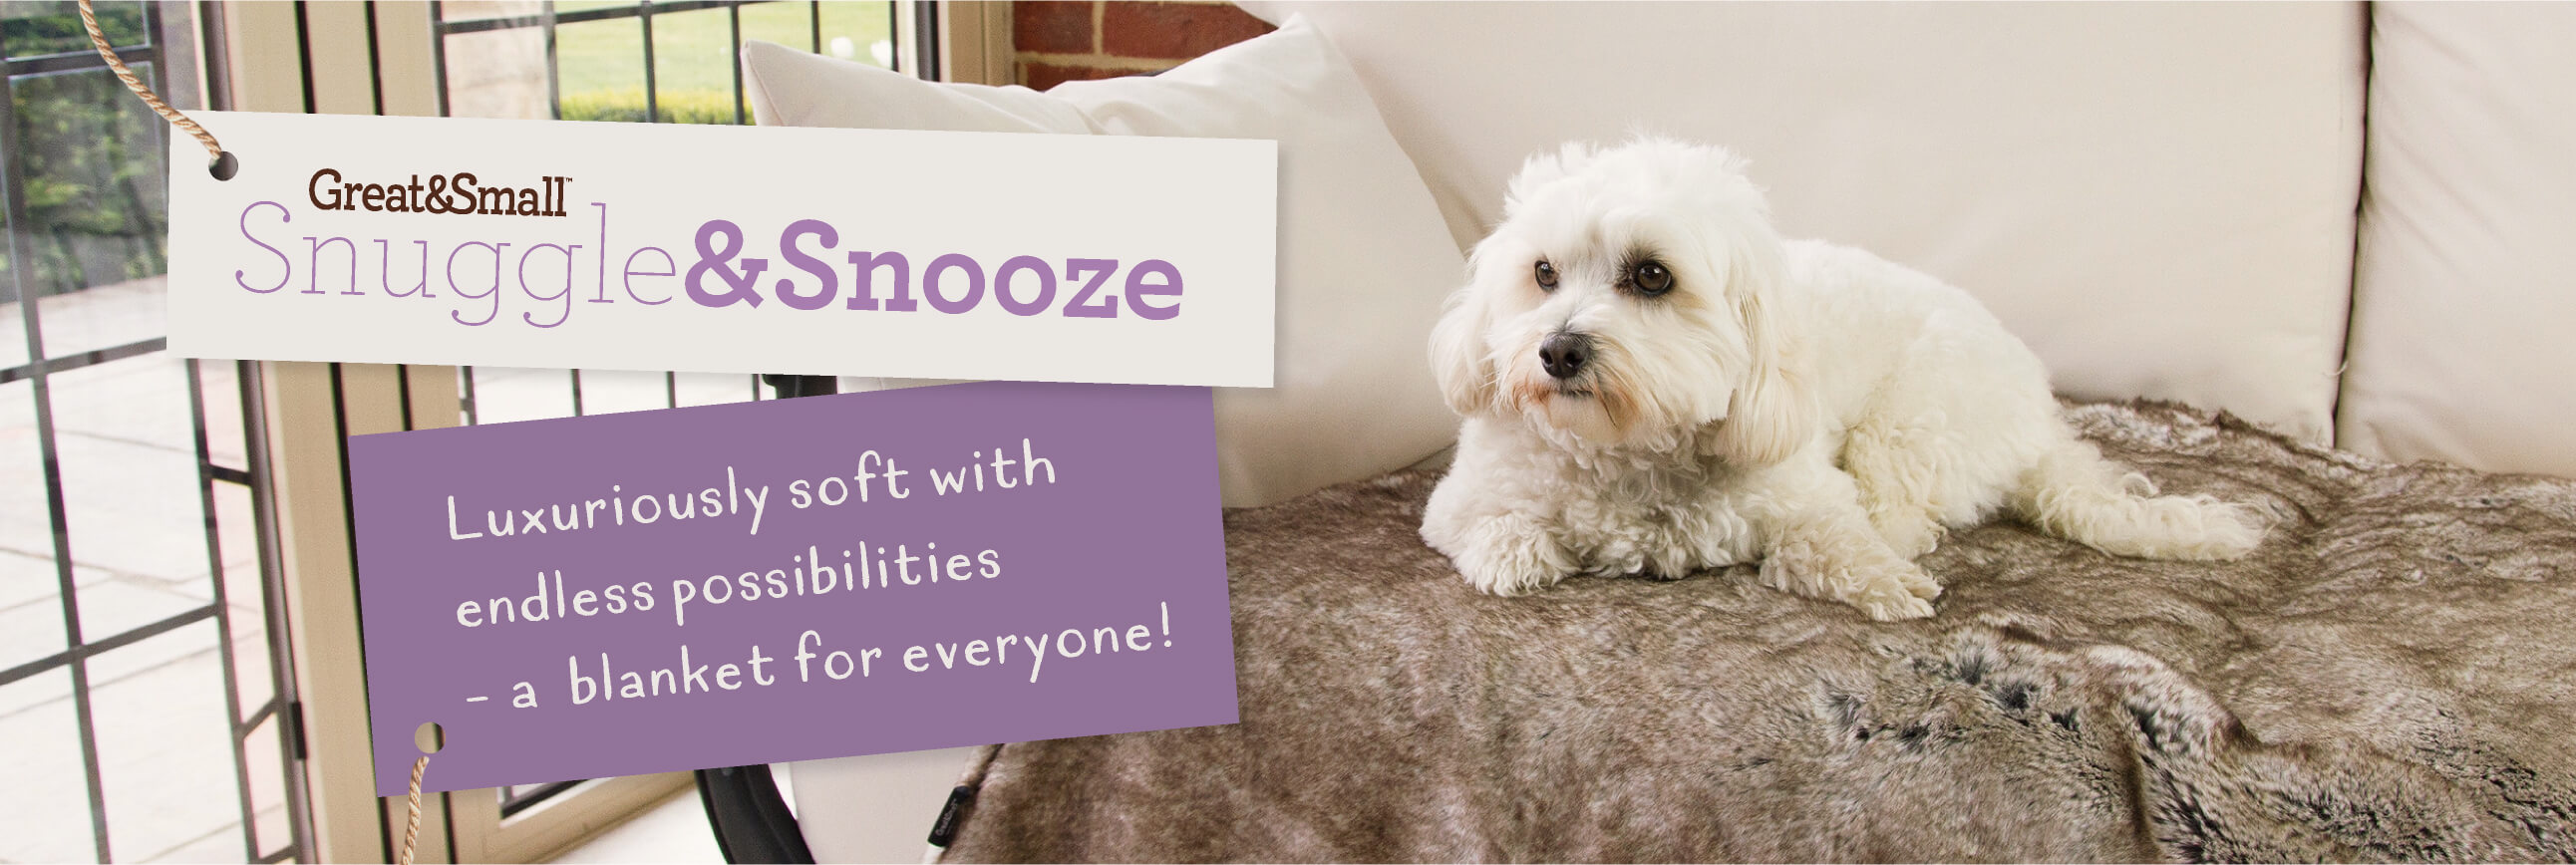 Great&Small Snuggle & Snooze Faux Fur Blanket Bed Now Only £59.99